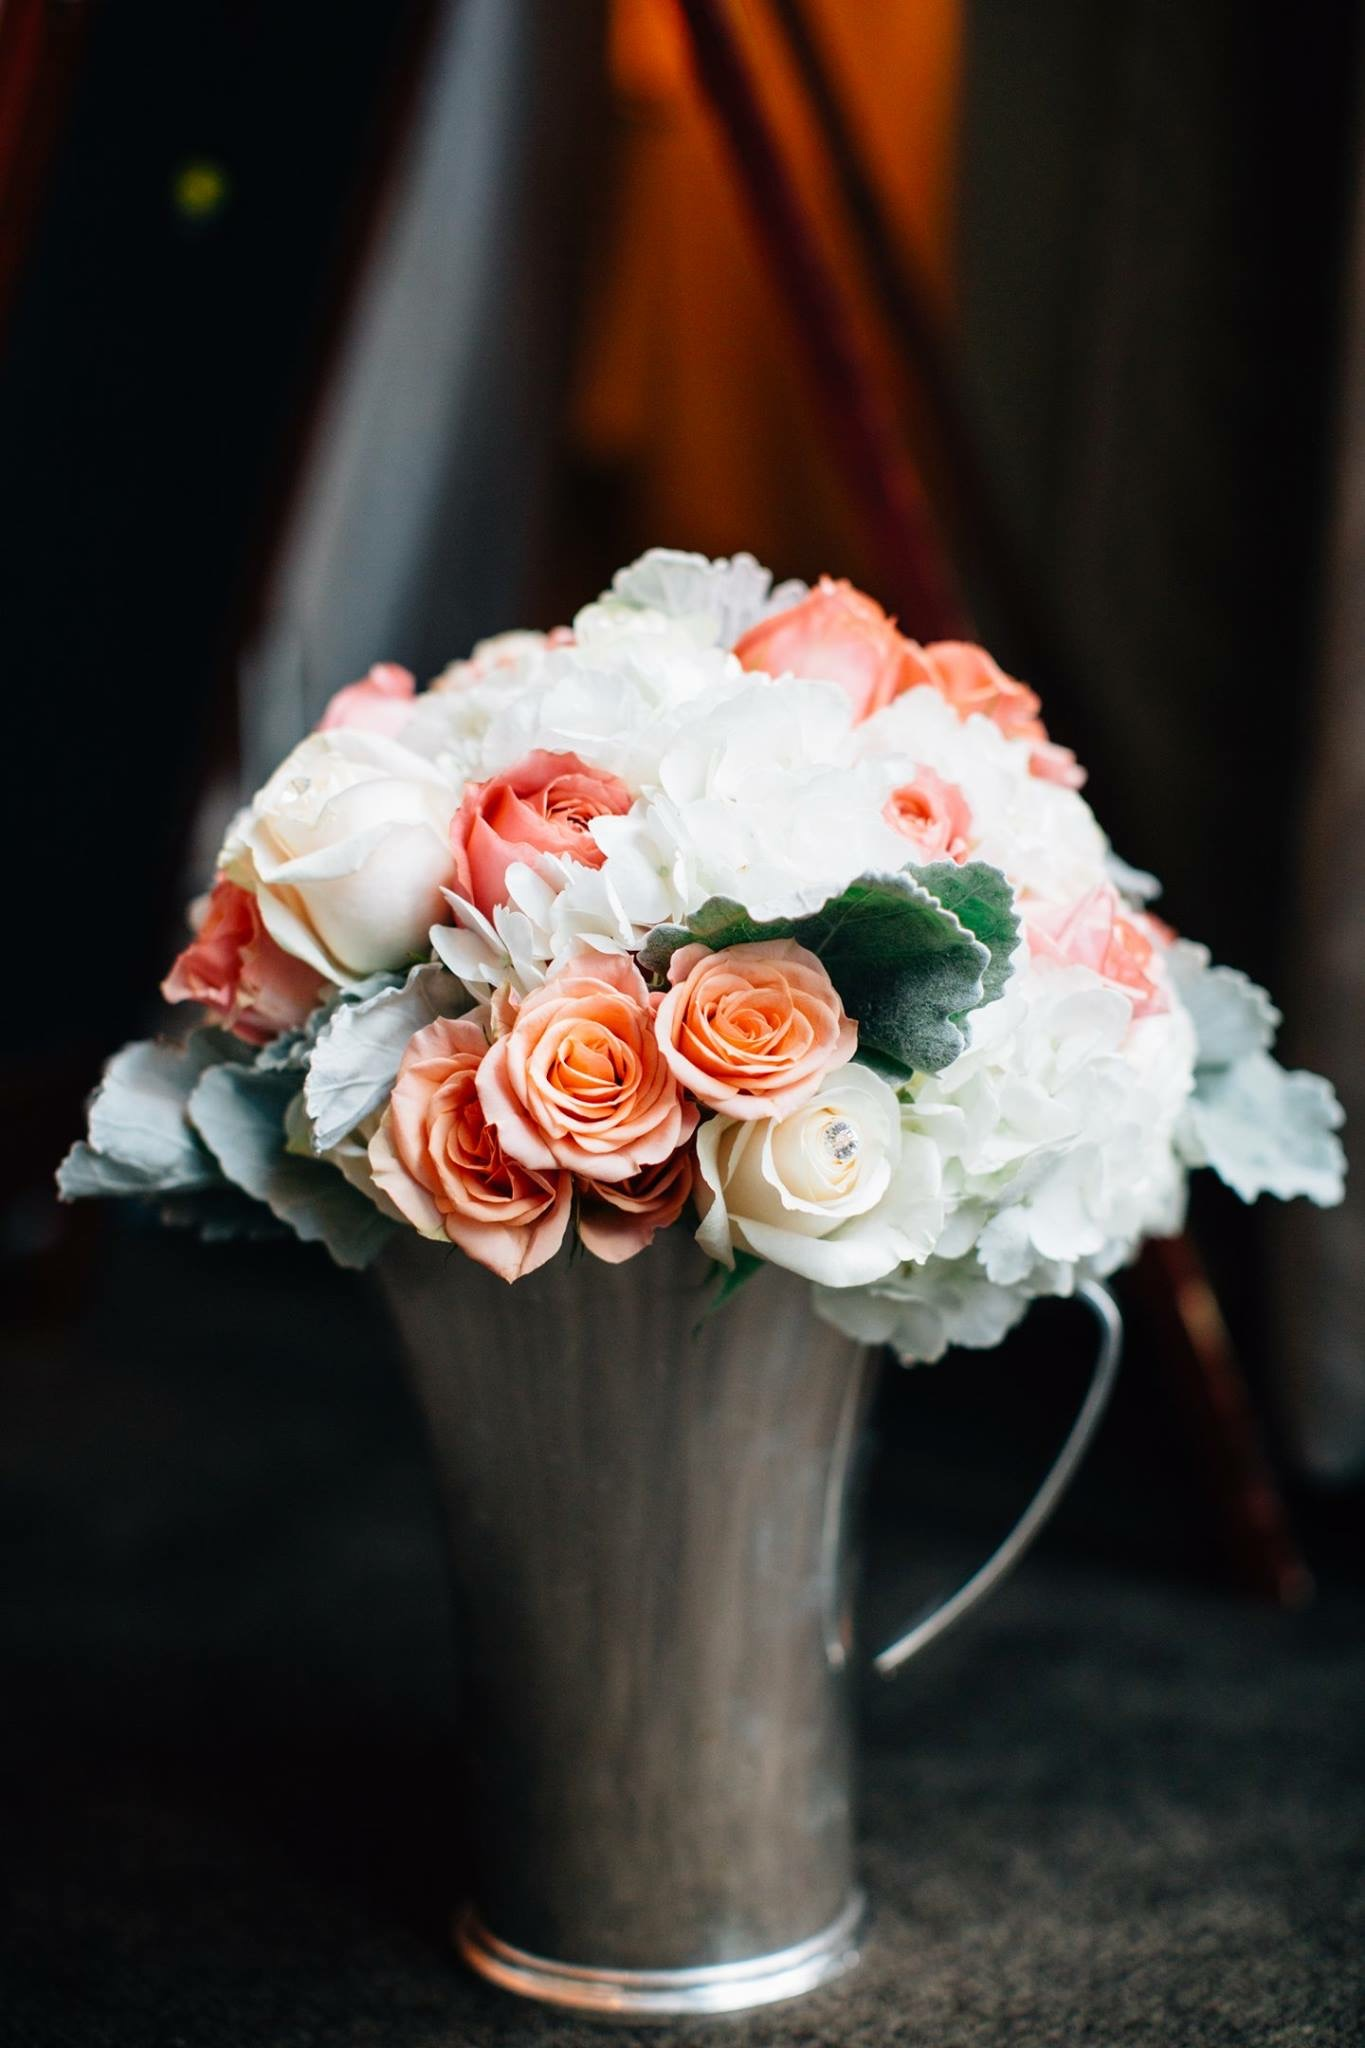 The Juliet garden roses were a show-stopper in the bridal bouquet.